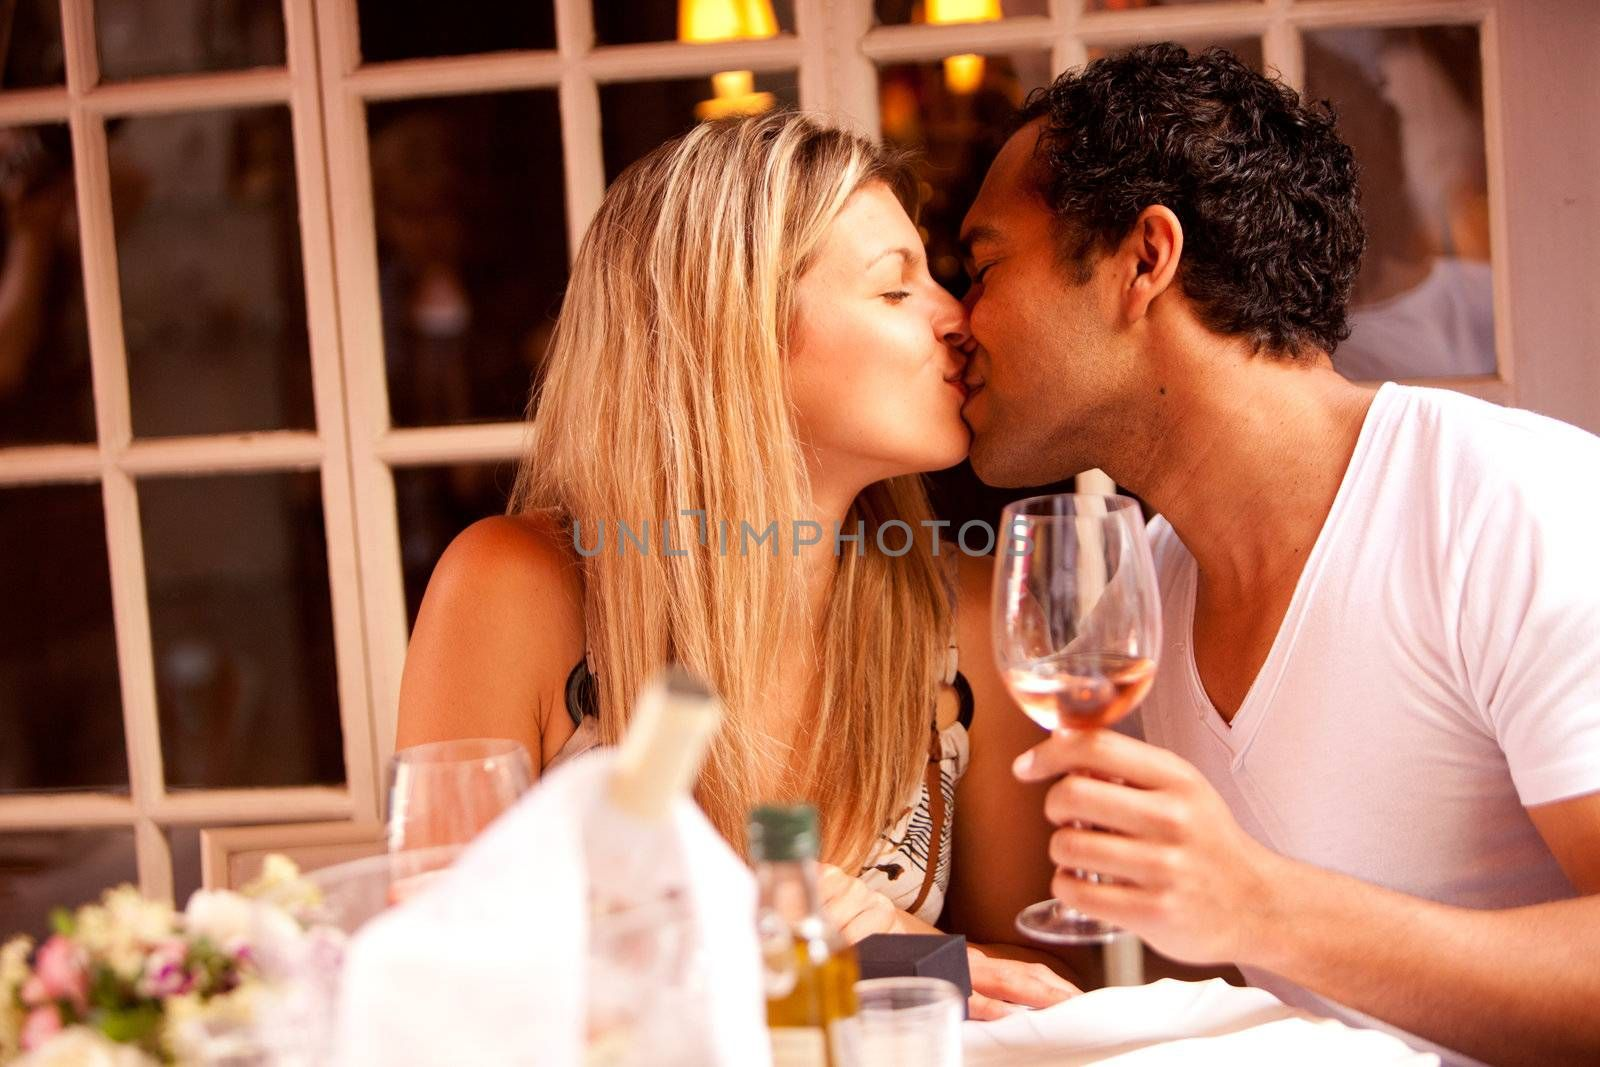 A man and woman having a romantic meal in an outdoor cafe